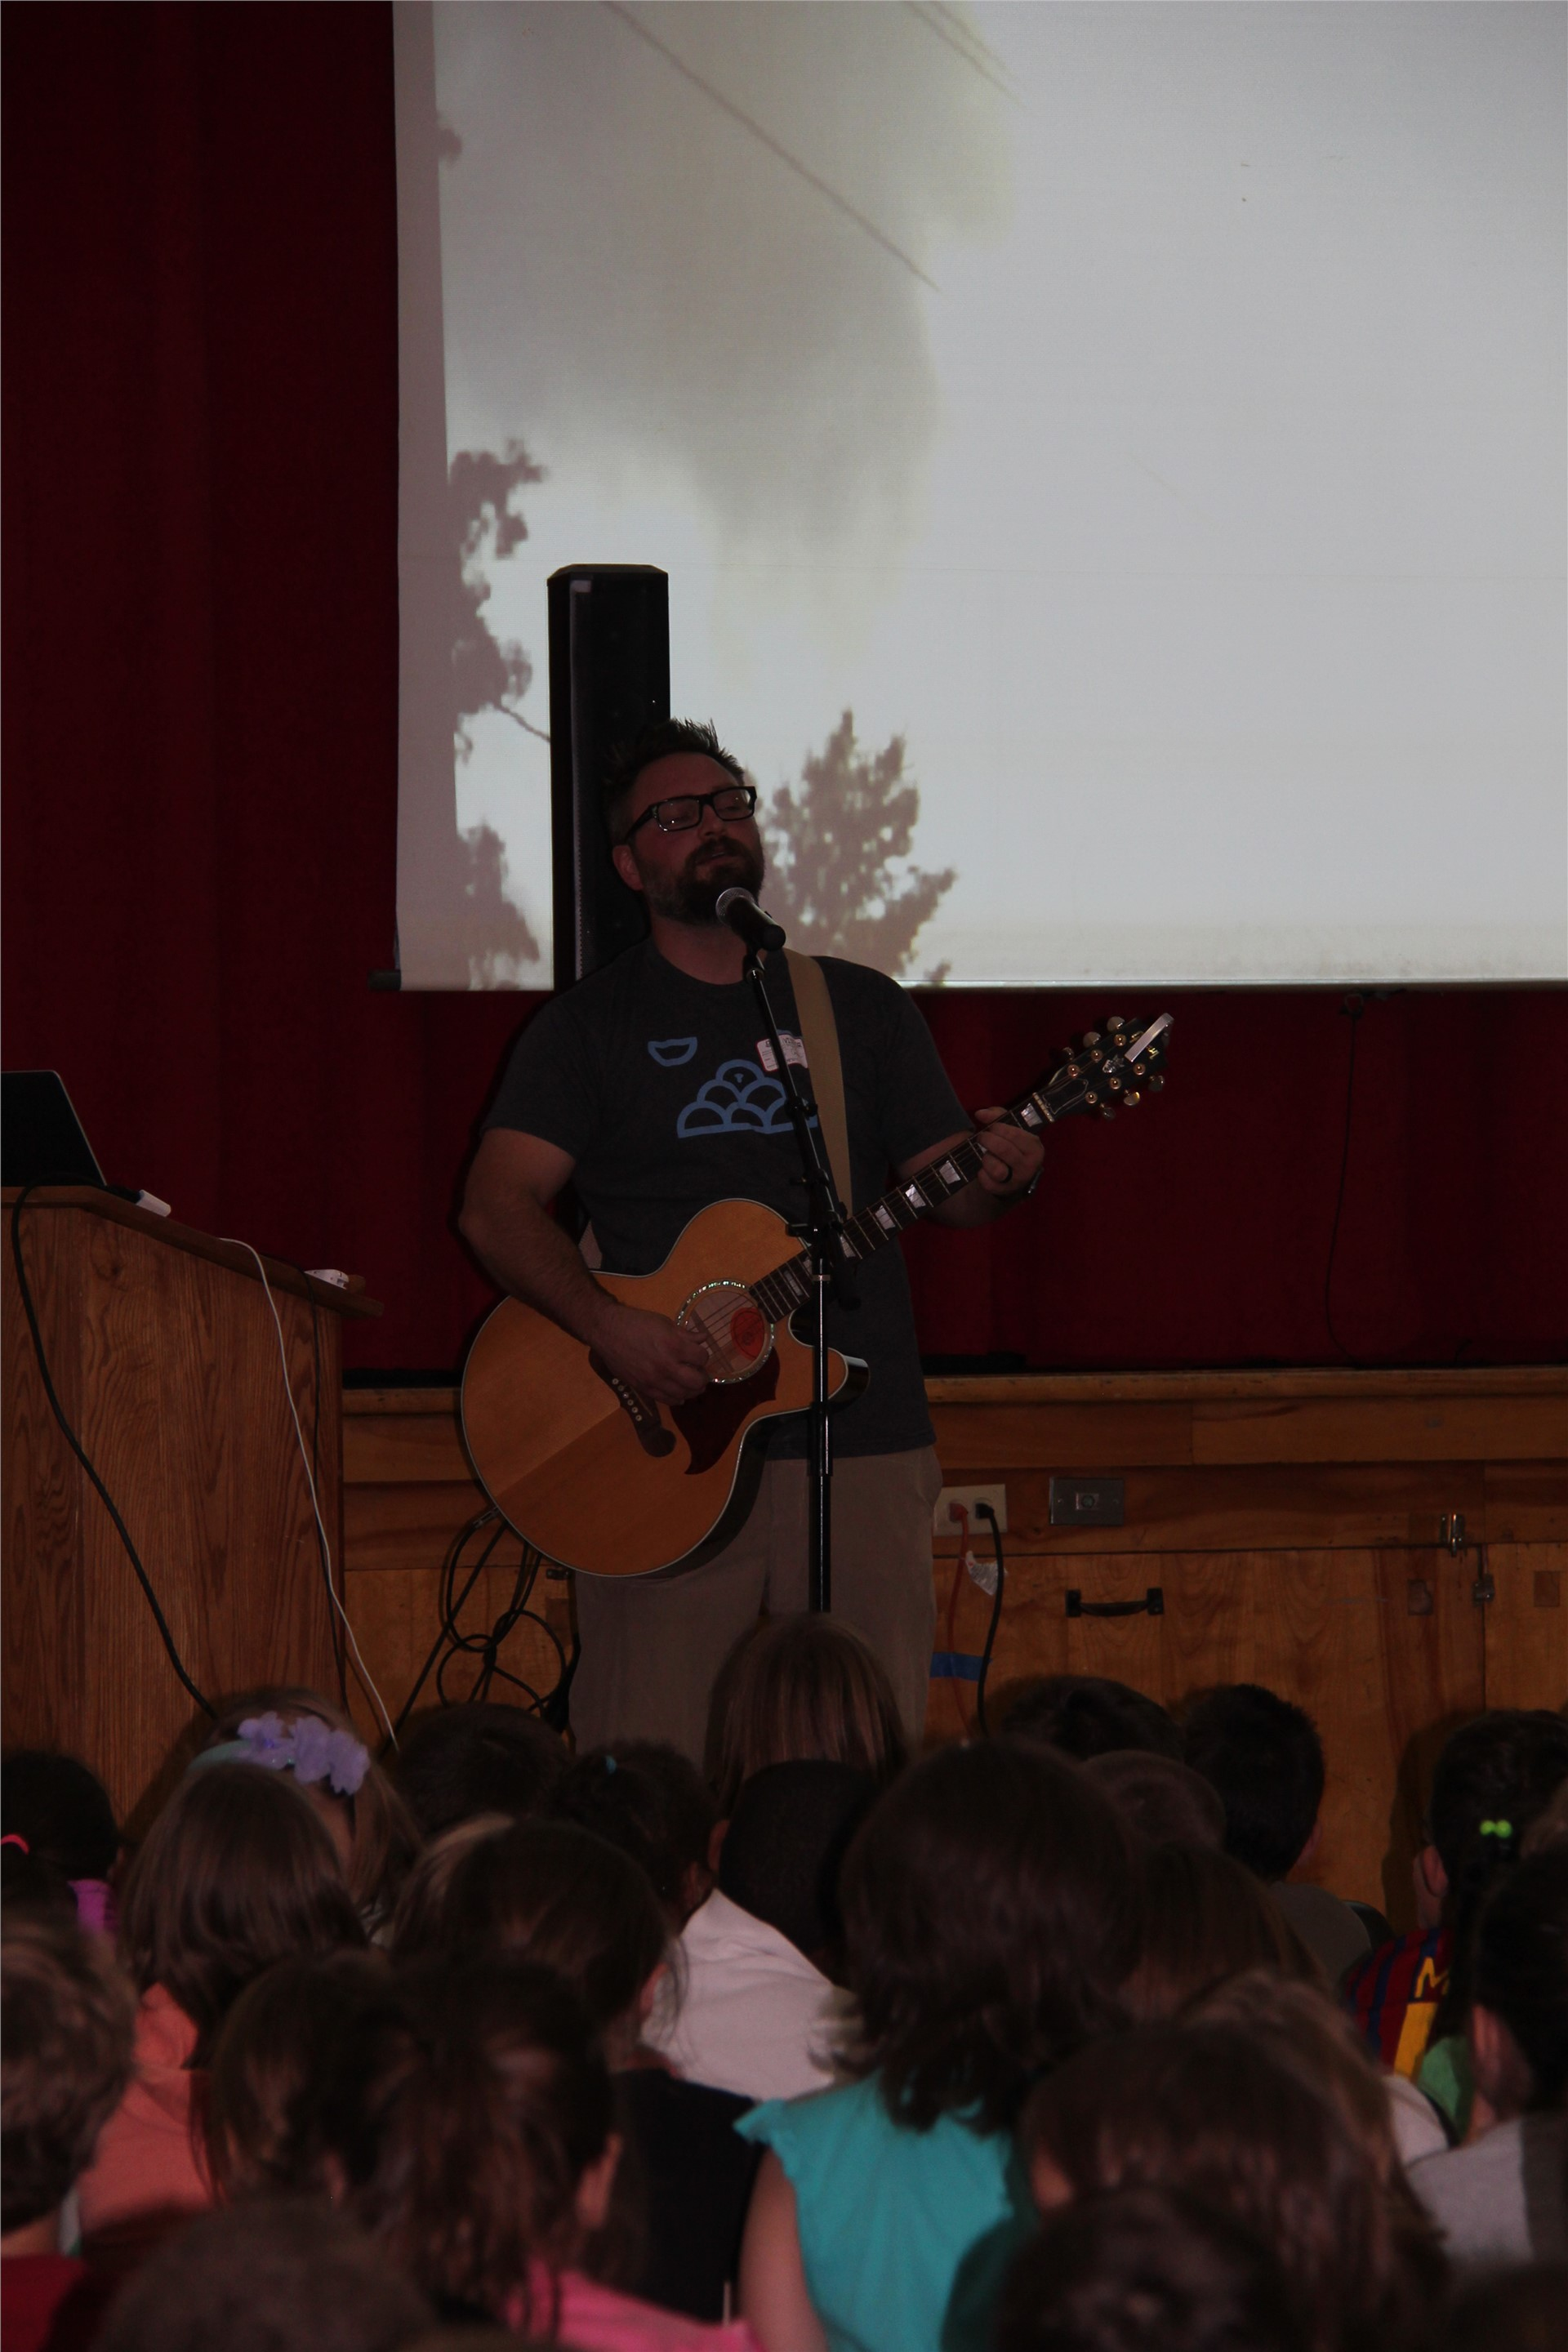 medium shot of jared campbell performing in front of screen